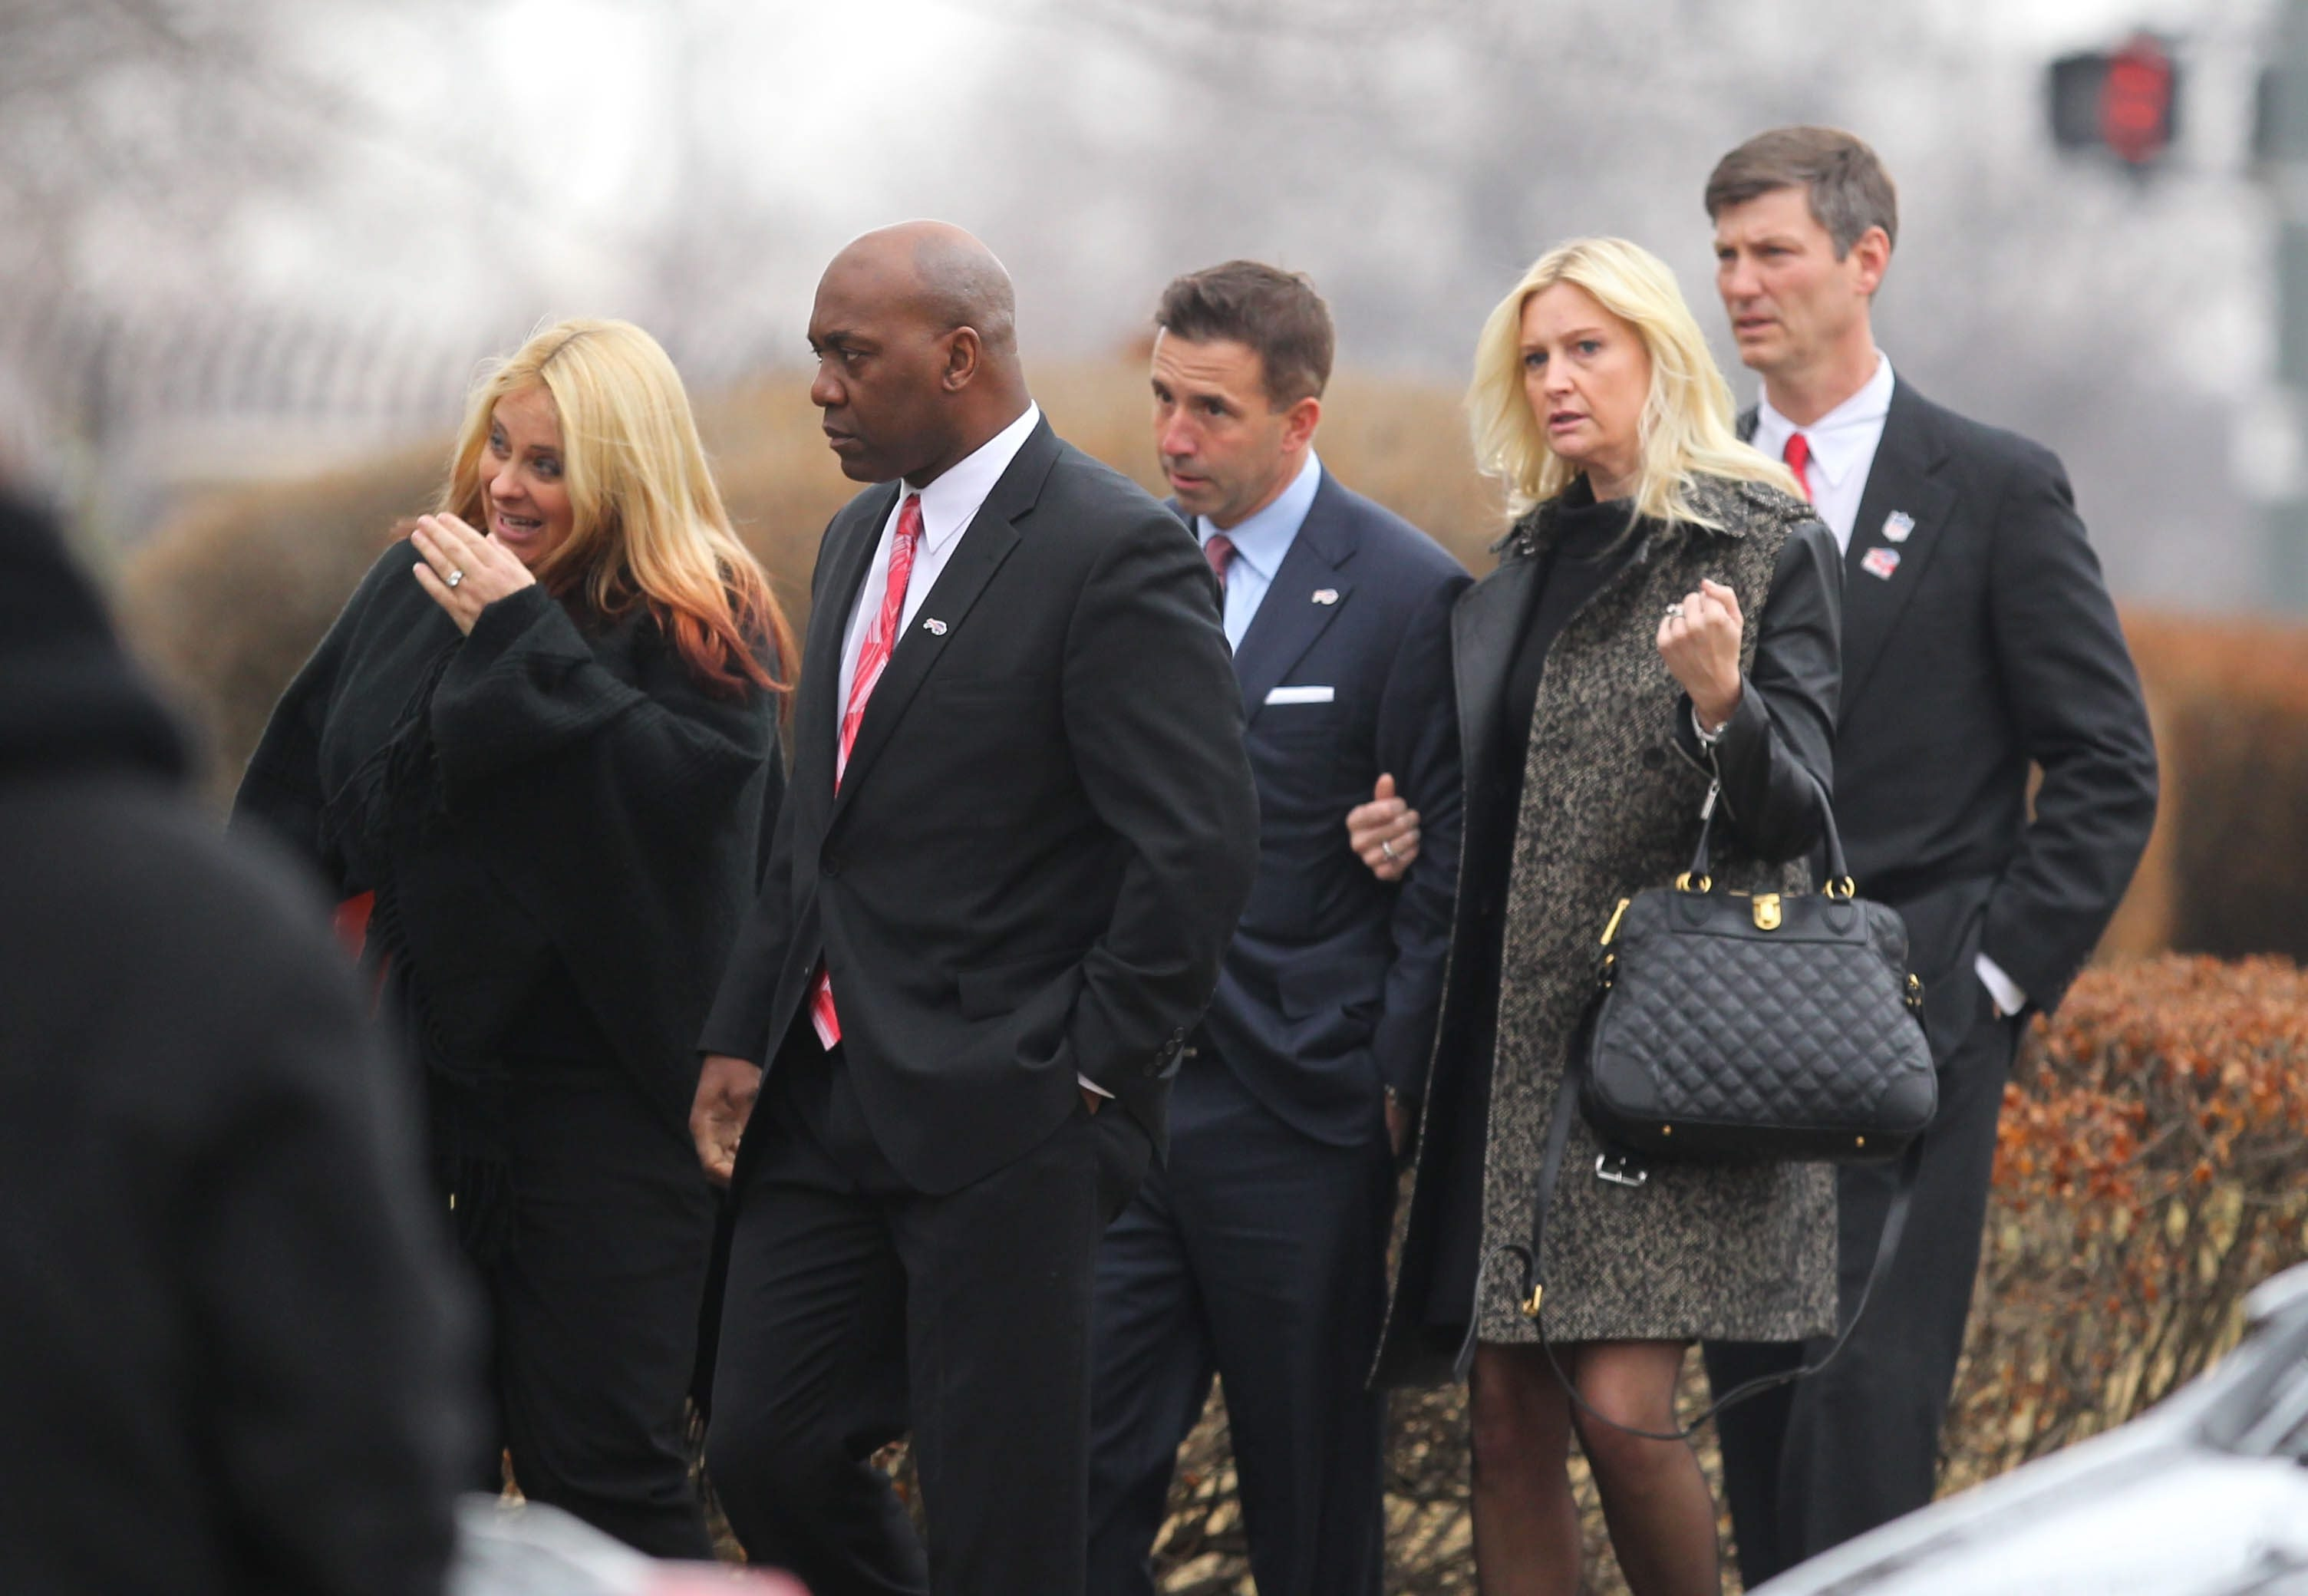 Mourners including Thurman Thomas, left, Russ Brandon, center, and John Marzo, right, arrive for the funeral of Ralph C. Wilson Jr. on Saturday at the Jefferson Avenue Presbyterian Church in Detroit.